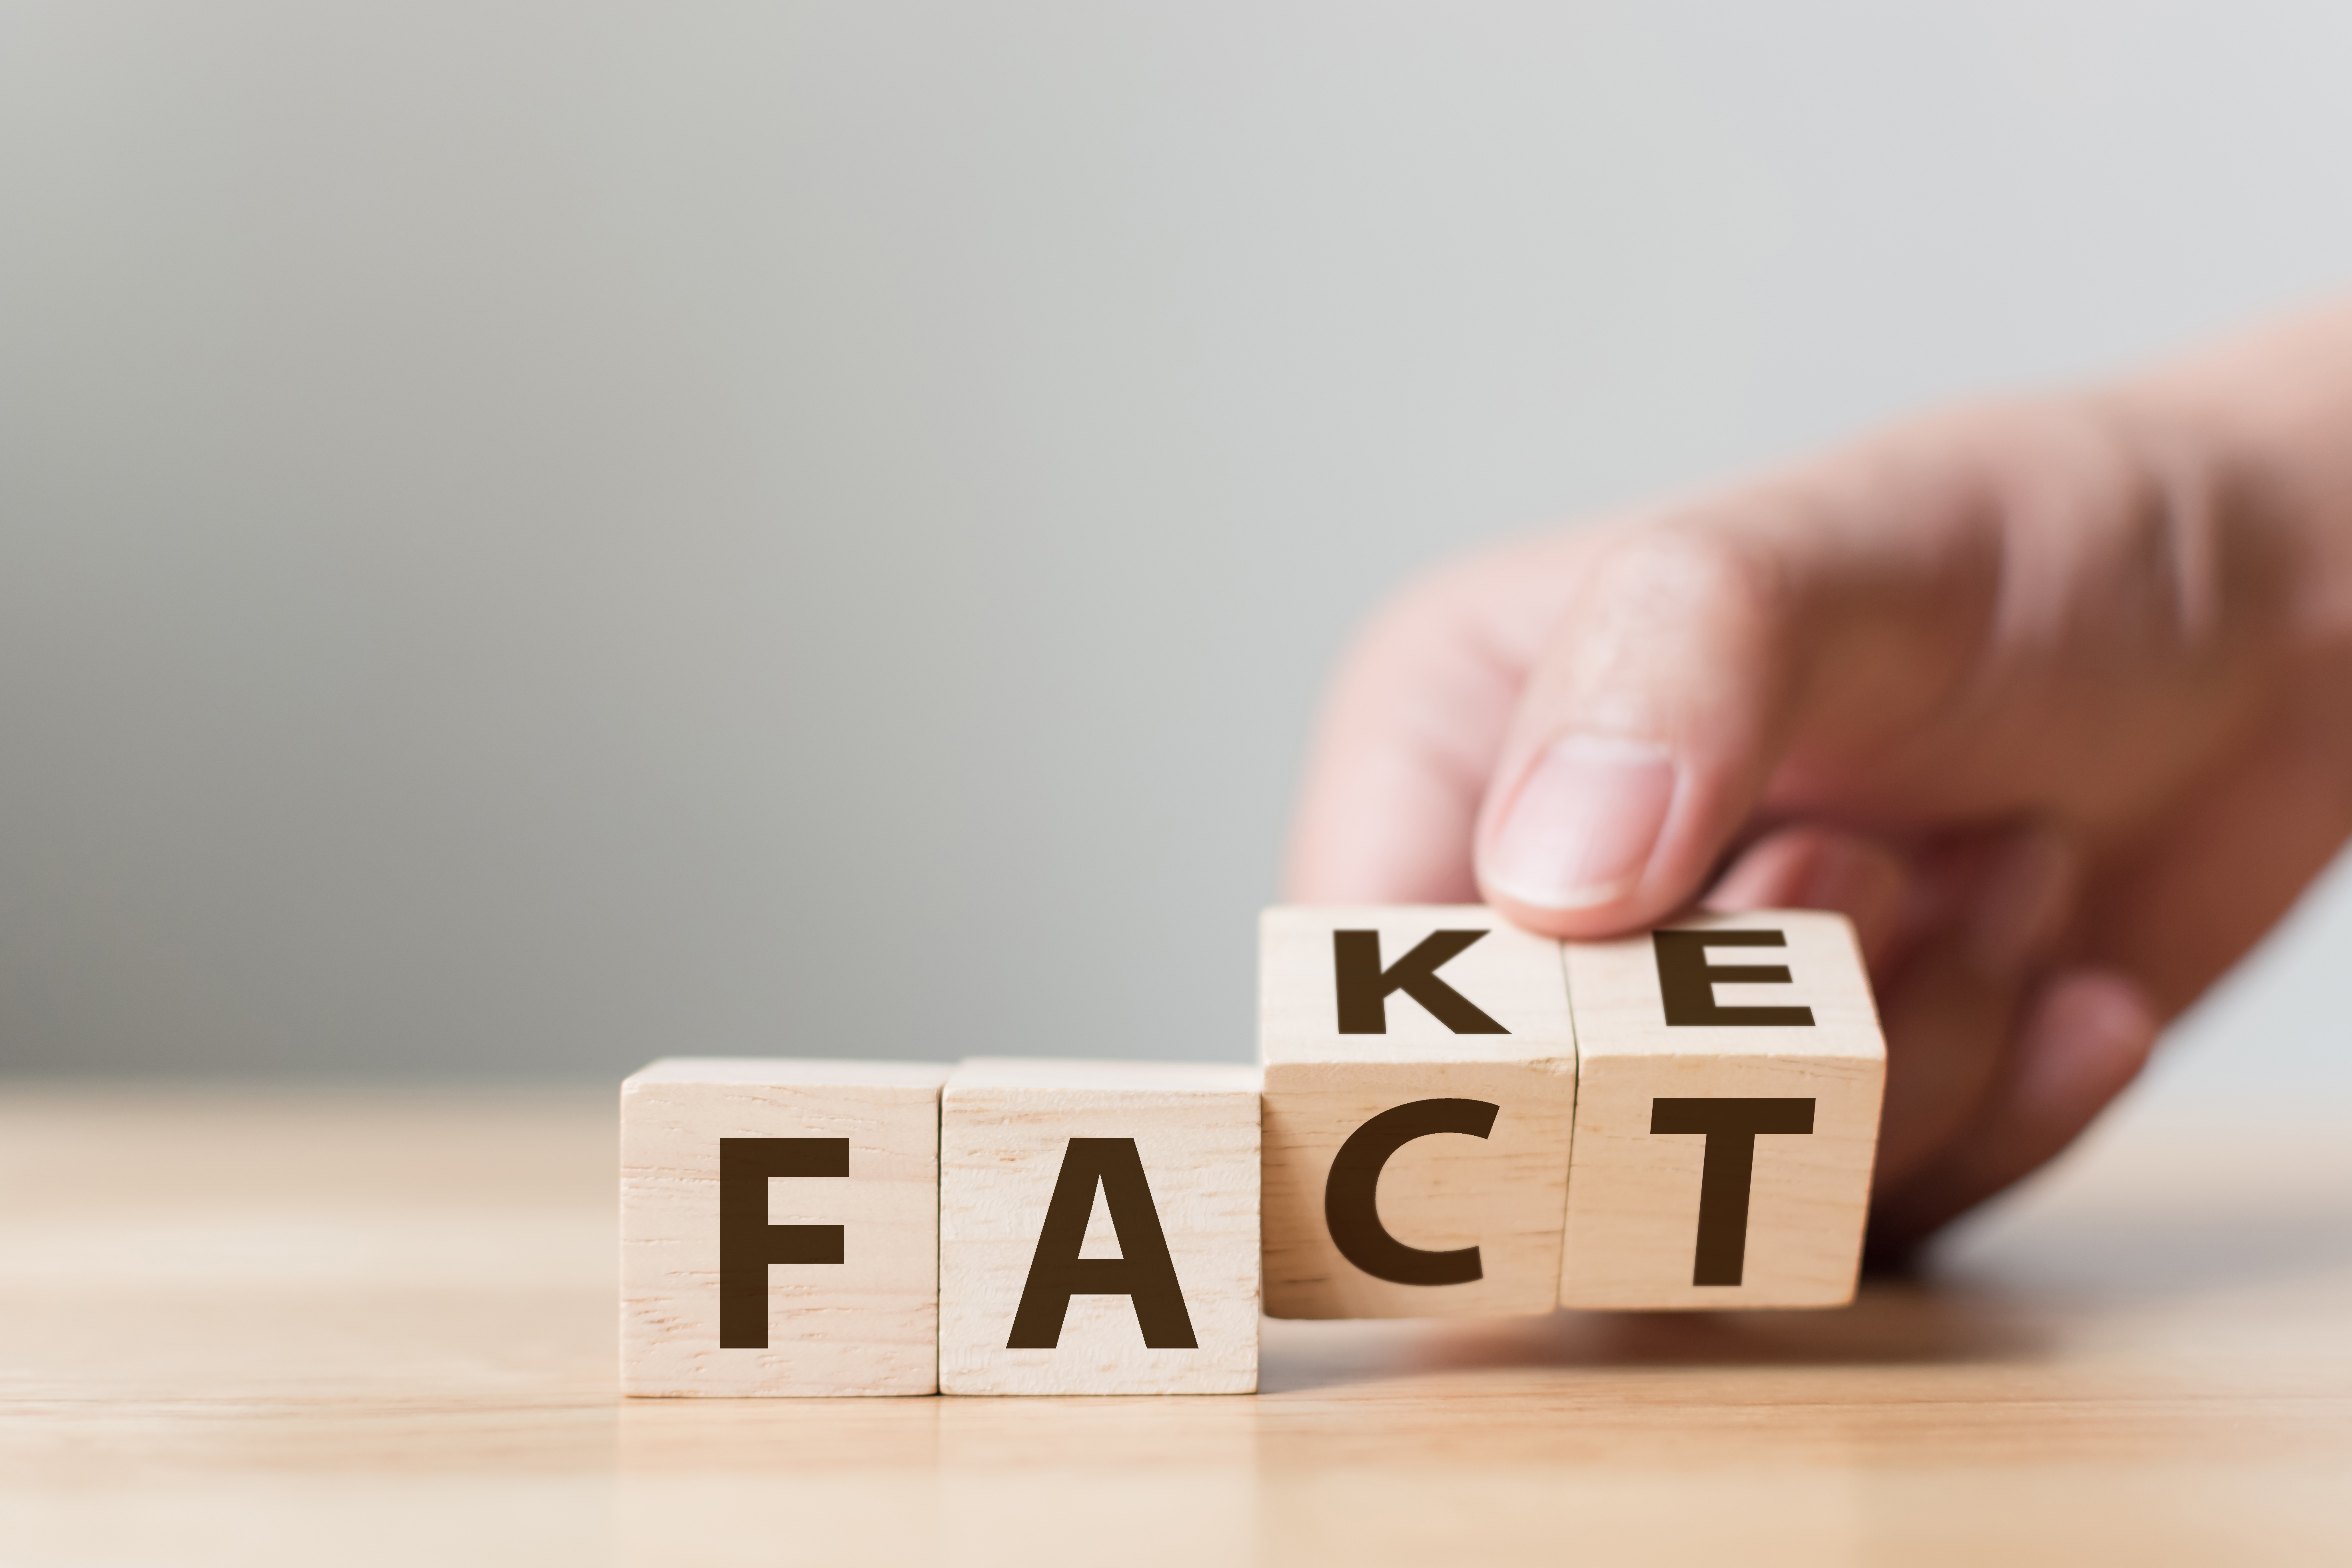 Fact or Fake concept, Hand flip wood cube change the word, April fools day